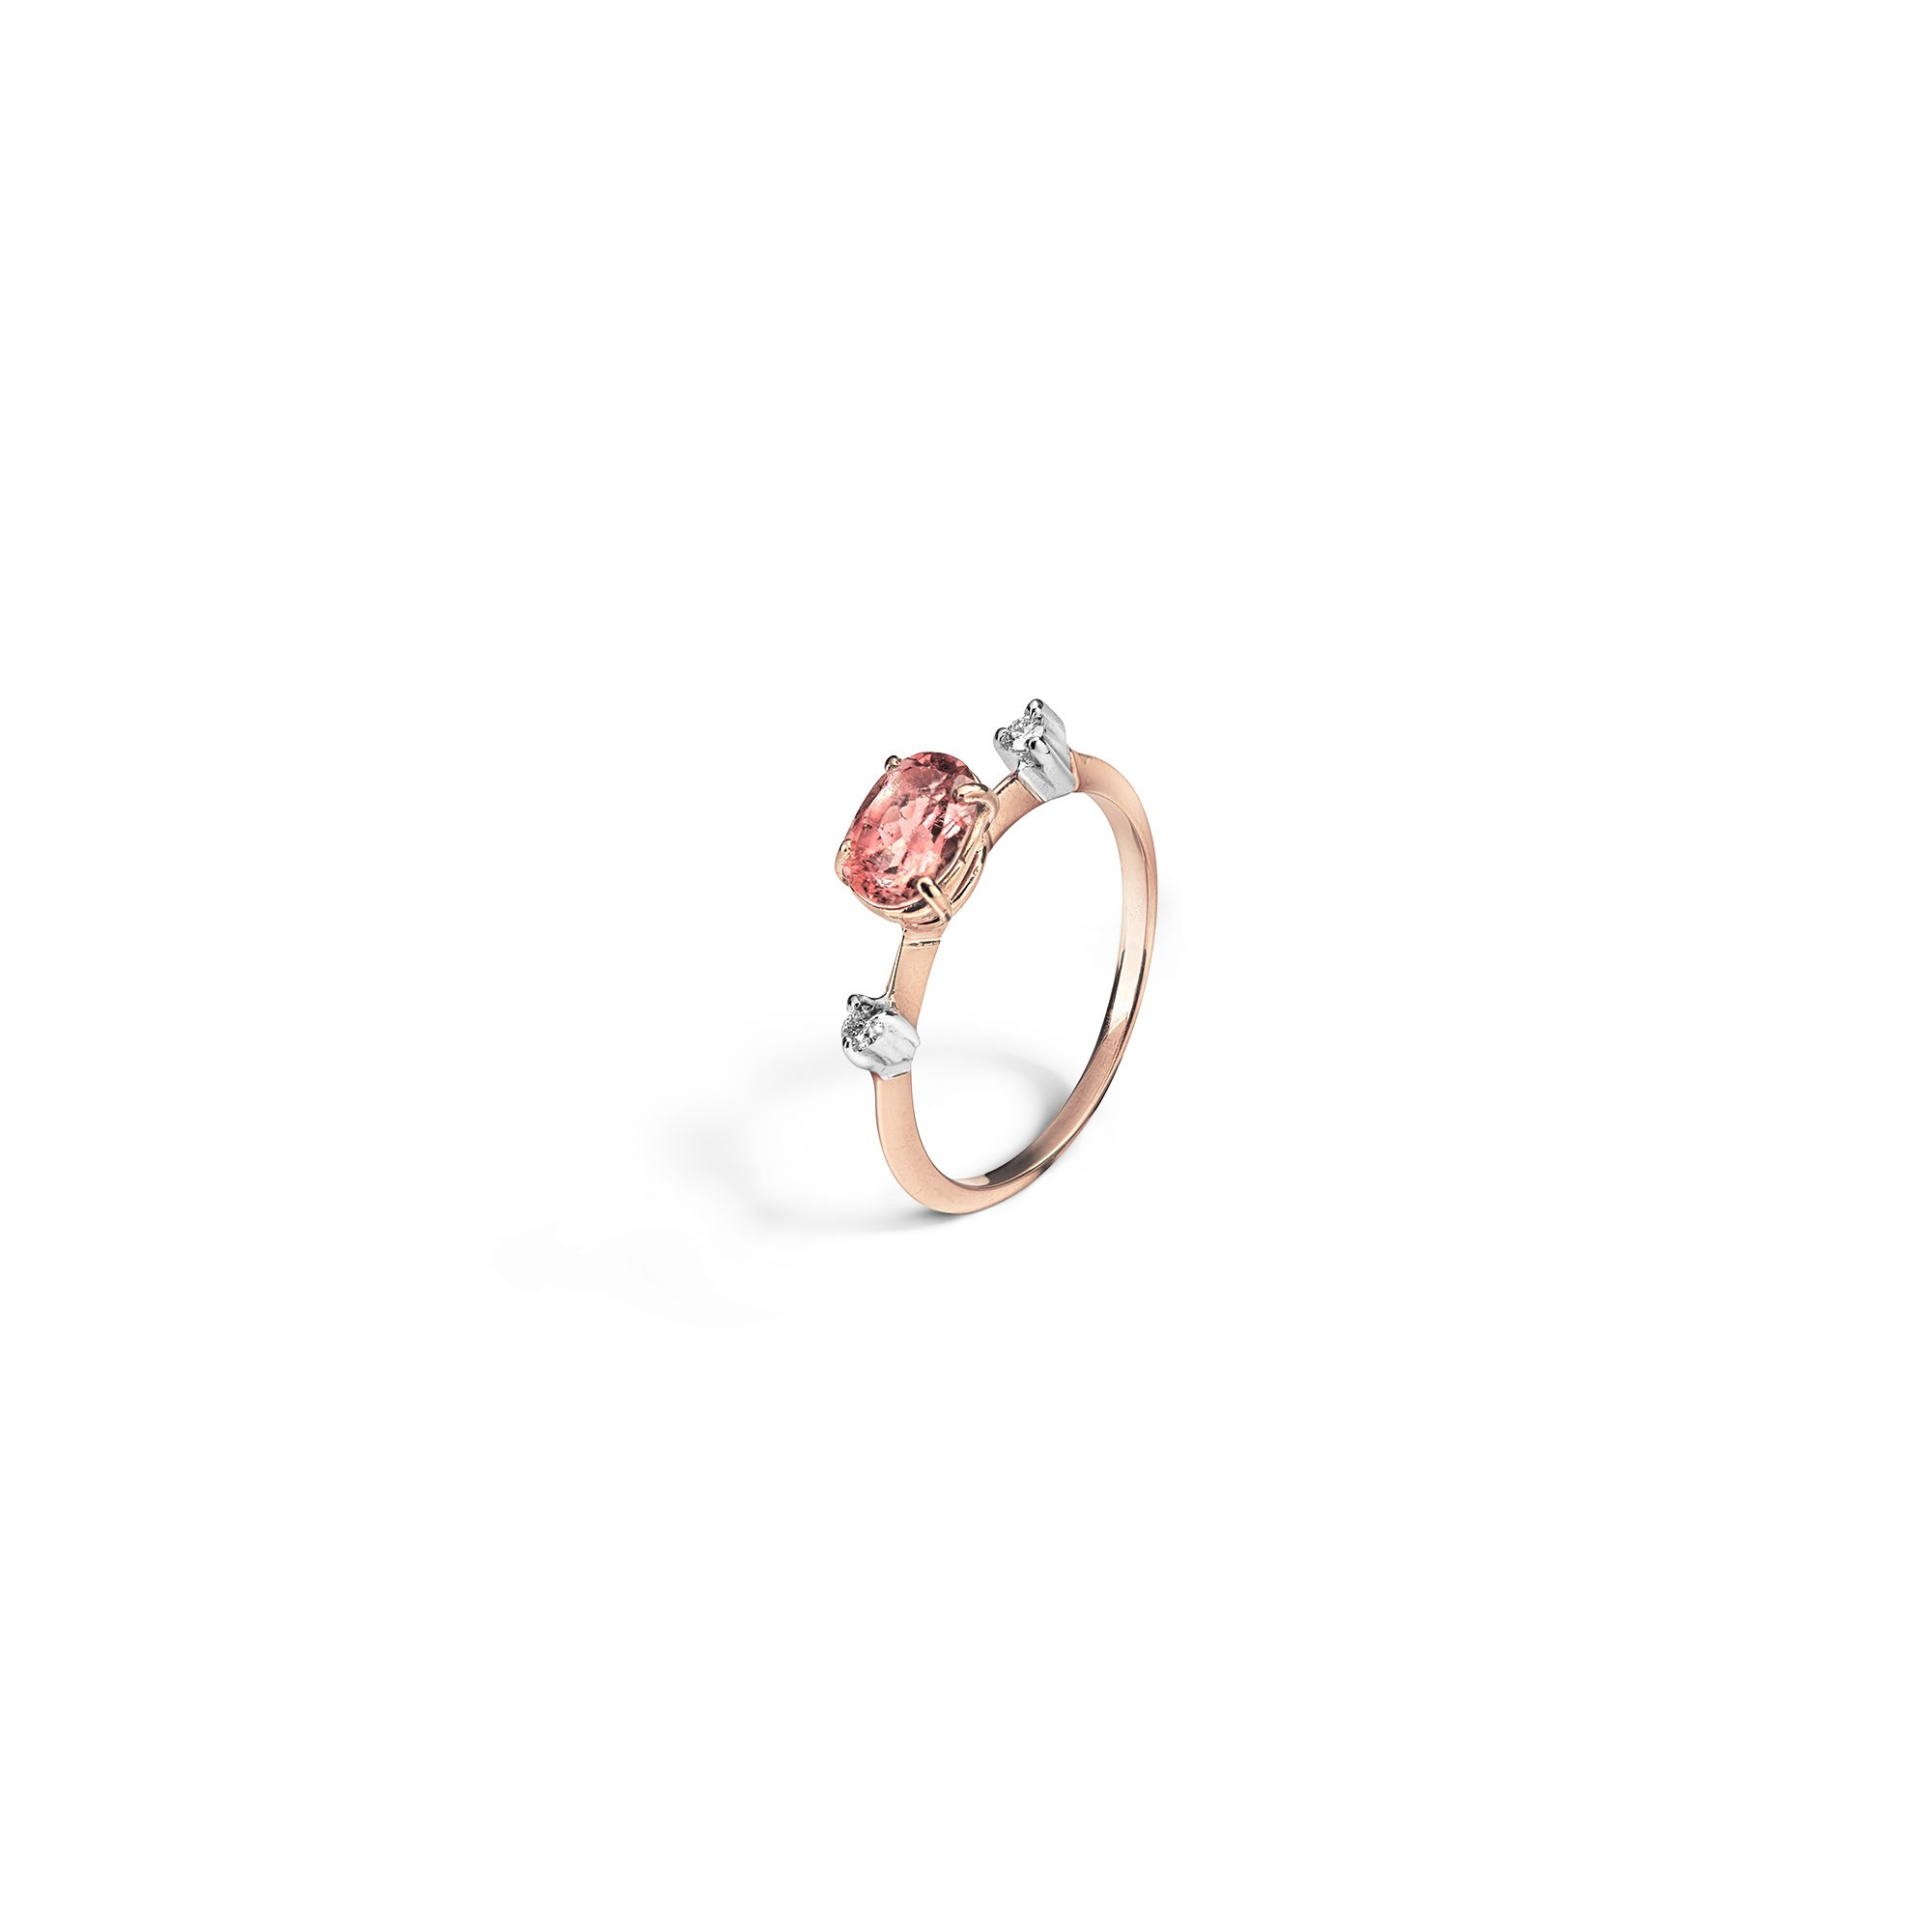 'Balance' tourmaline ring Rose gold ring with diamonds